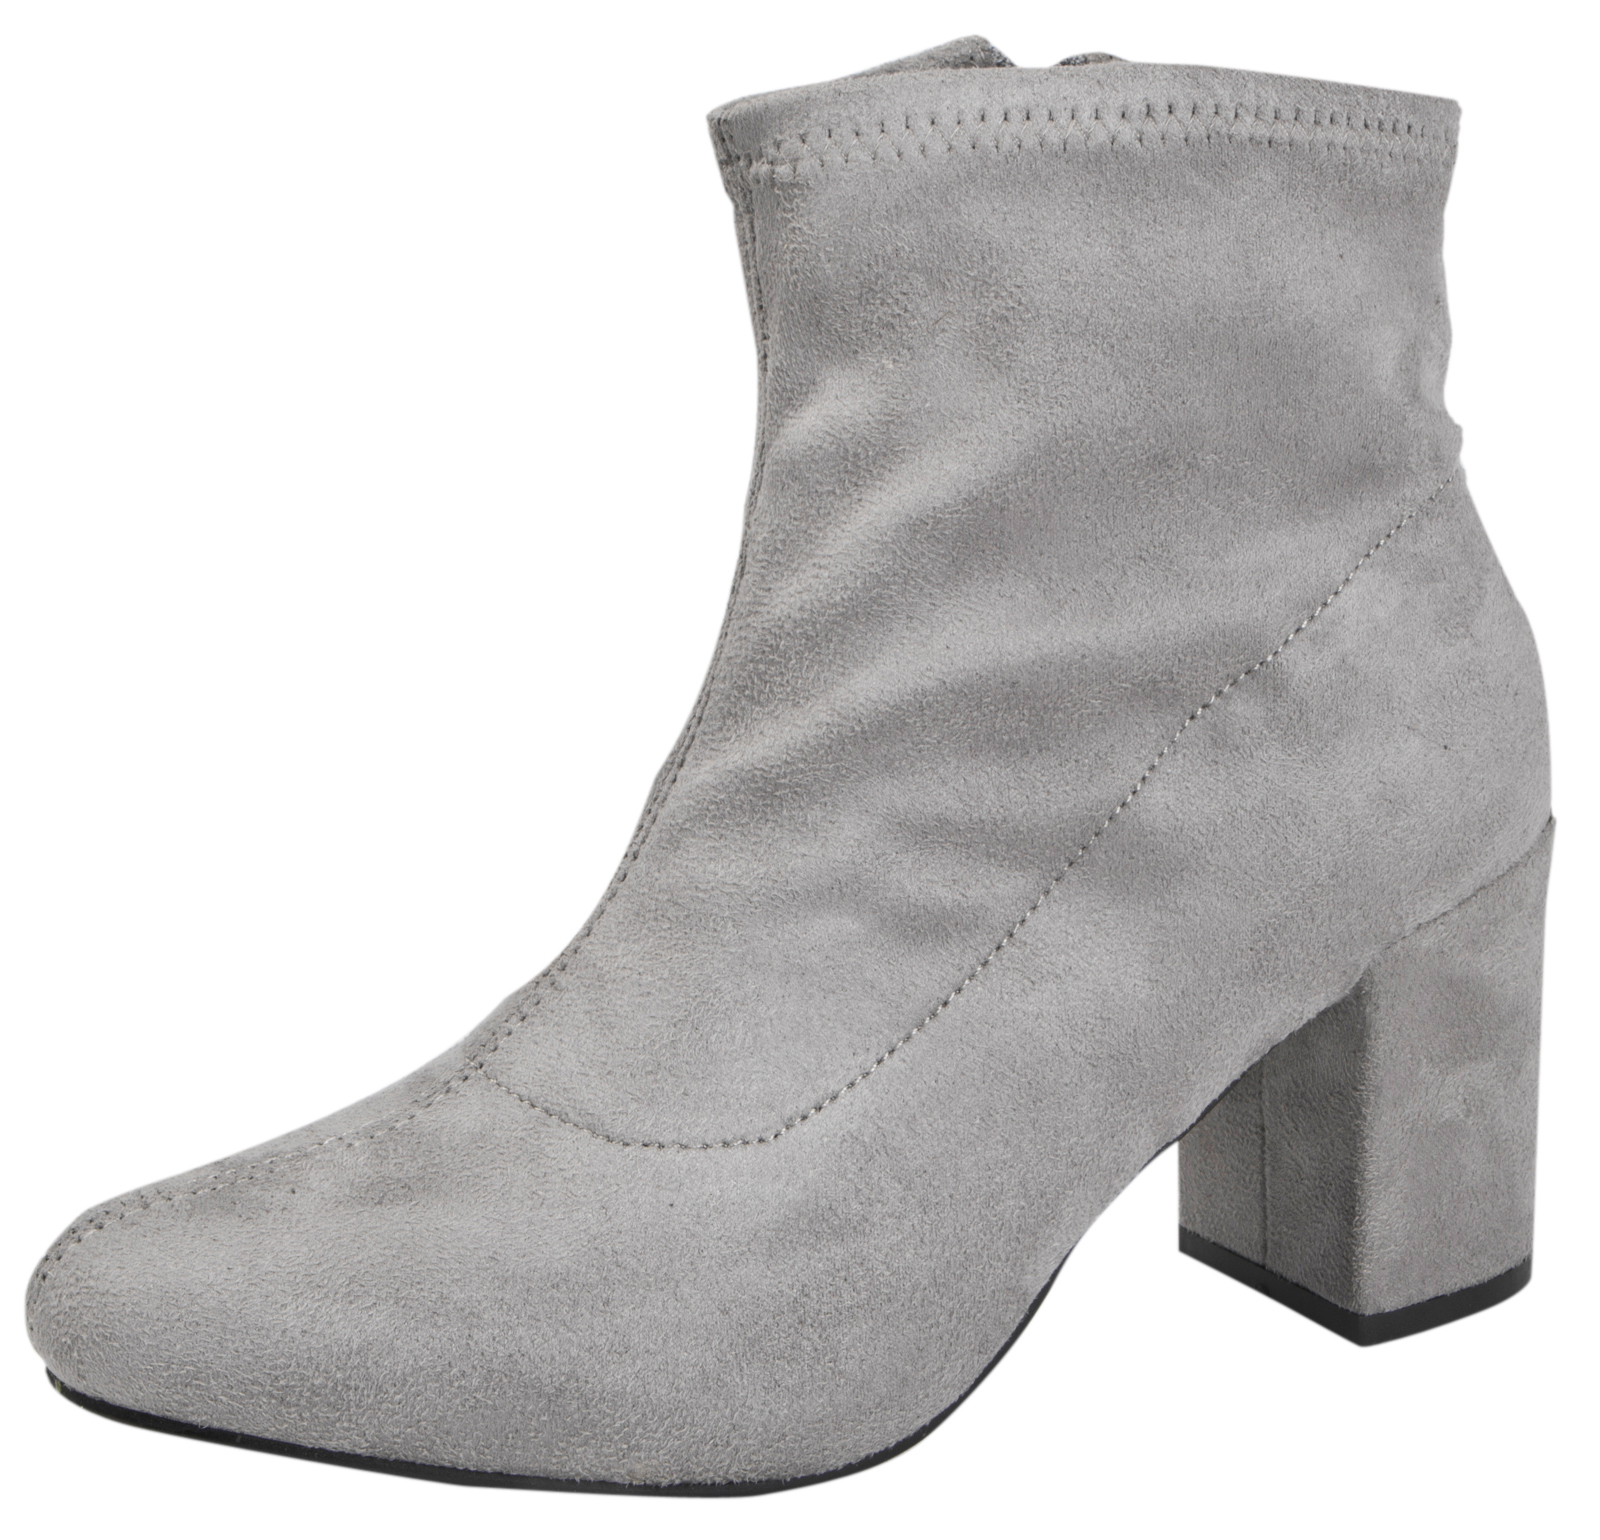 b2e759b8881 Details about Womens Chunky Block Heel Ankle Boots Faux Suede Velvet Sock  Top Boots Shoes Size